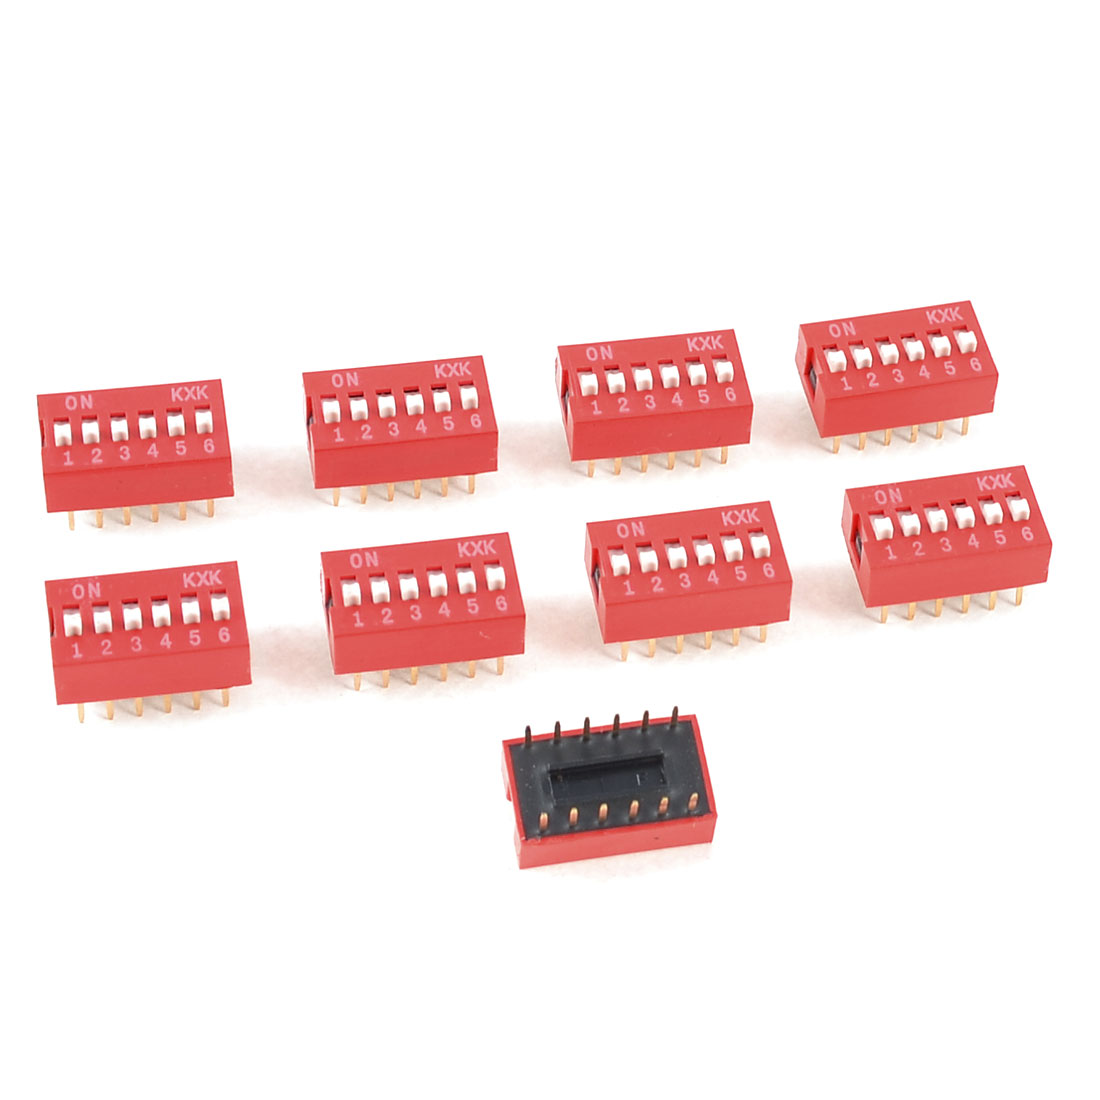 10 Pcs Red Double Row 6 Positions 2.54mm Pitch DIP Switches